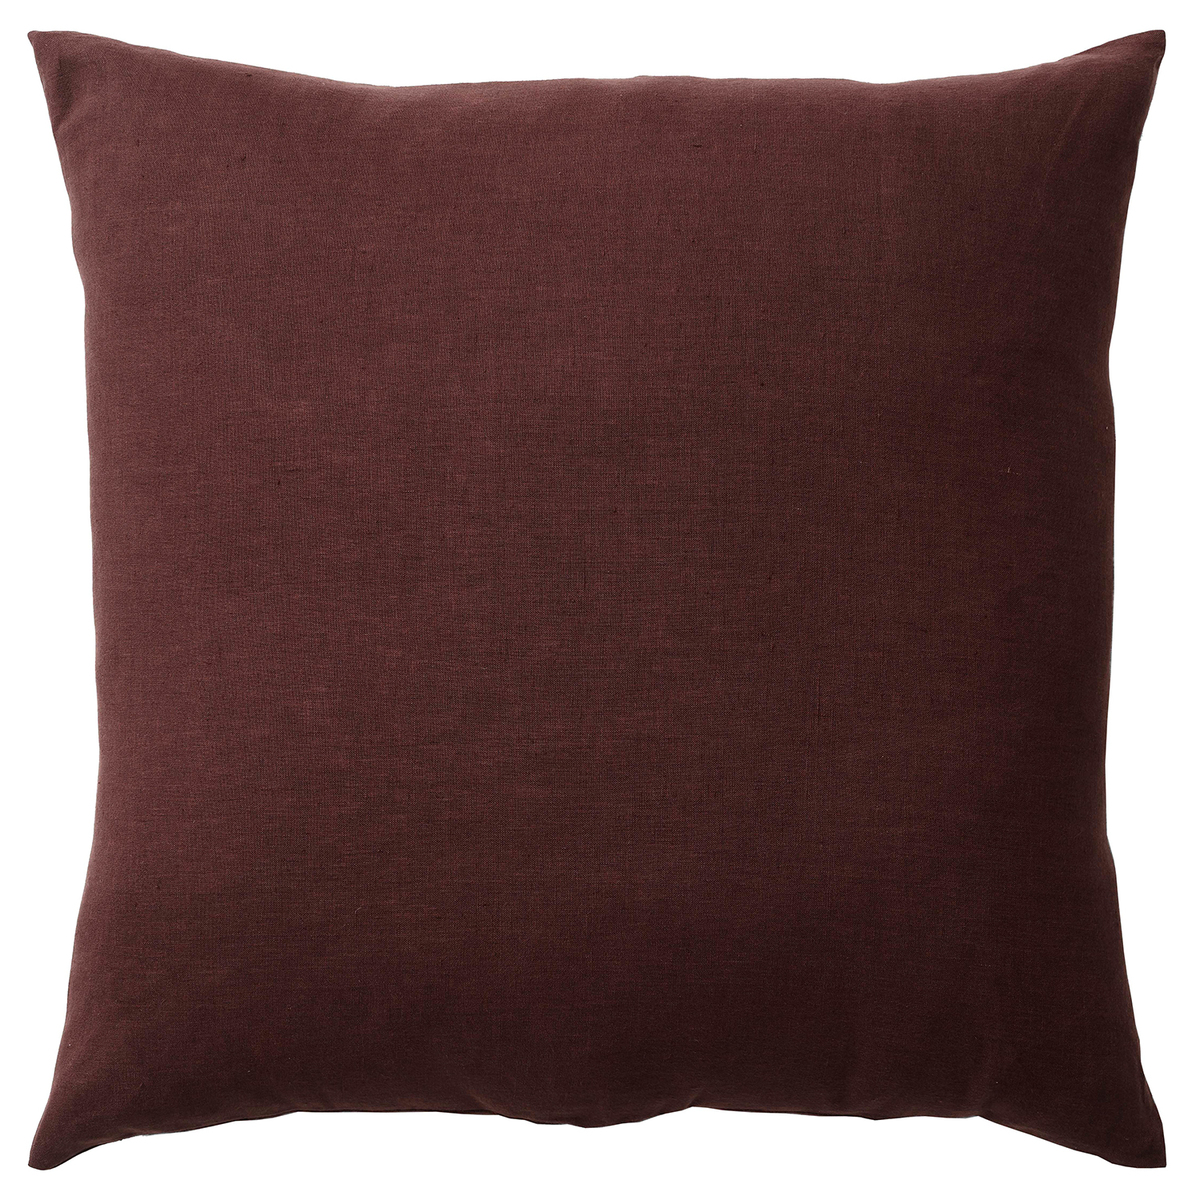 &Tradition Collect Linen SC29 cushion, 65 x 65 cm, burgundy from &Tradition